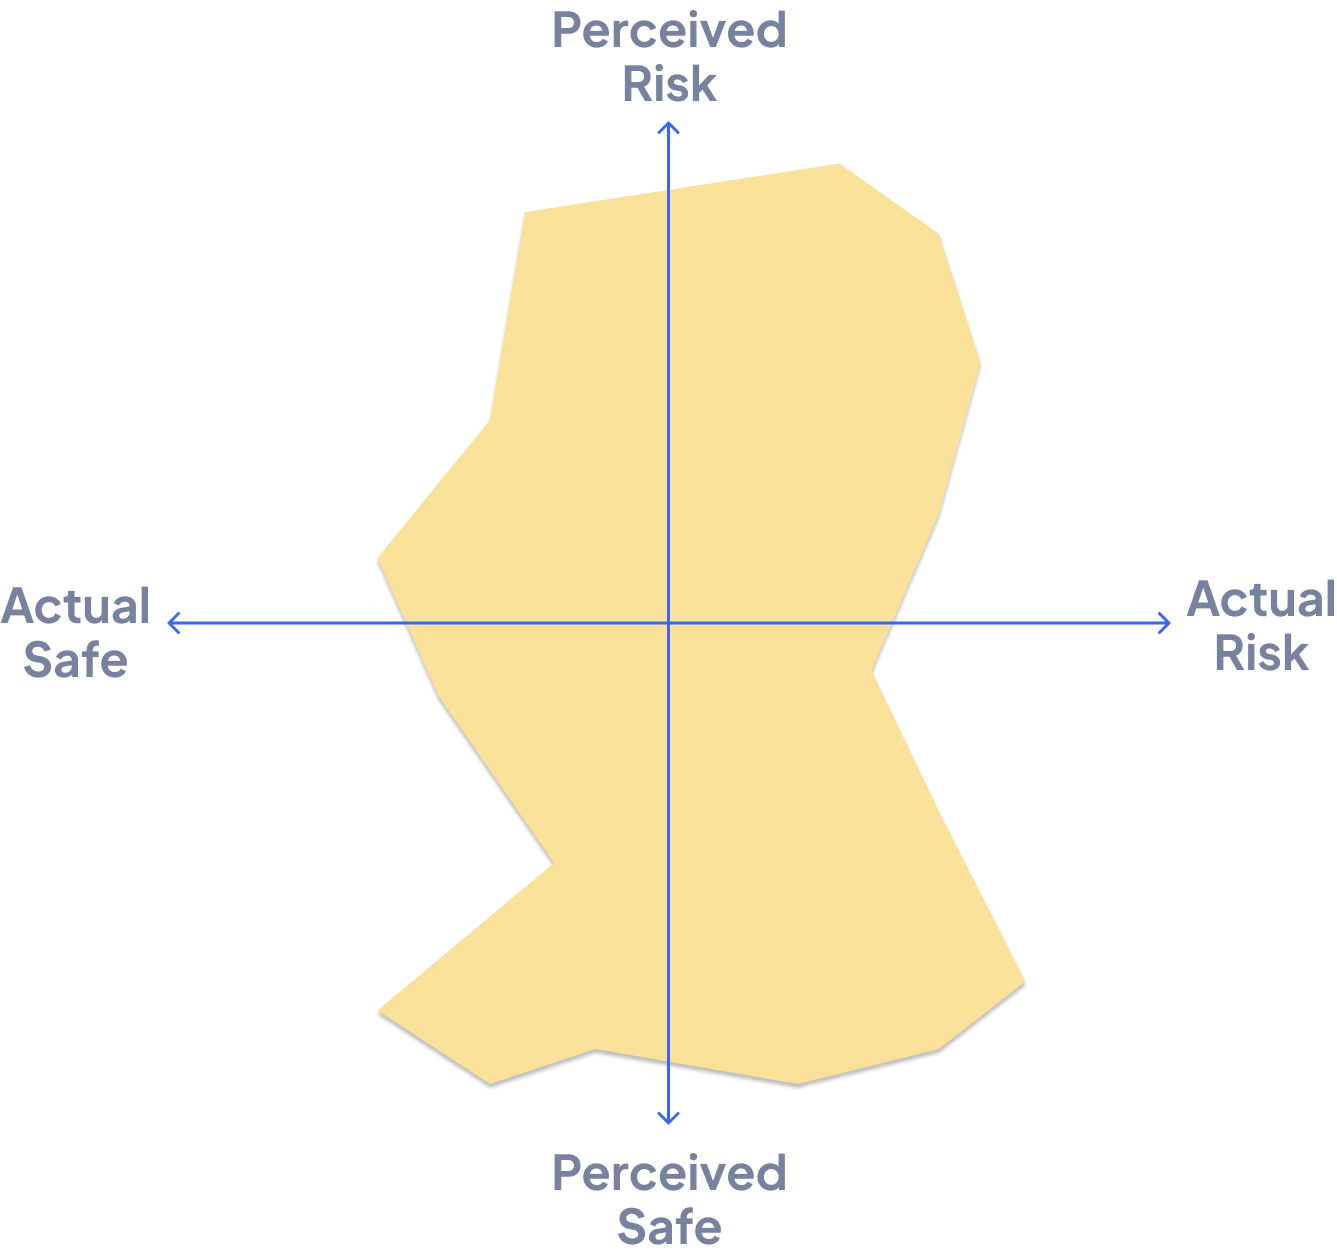 A two dimensional chart showing the results of a test which depicts a driver's perceived risk and actual risk